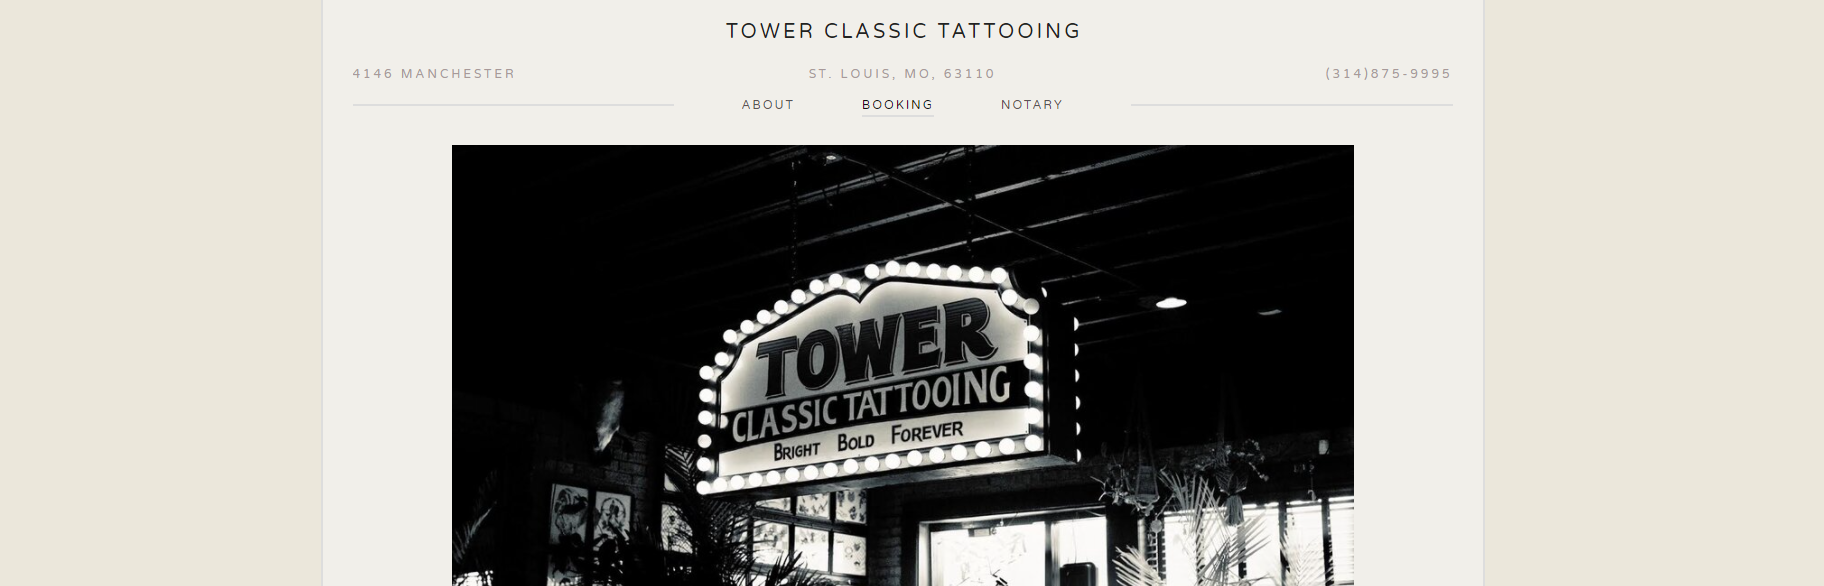 Tower Classic Tattooing